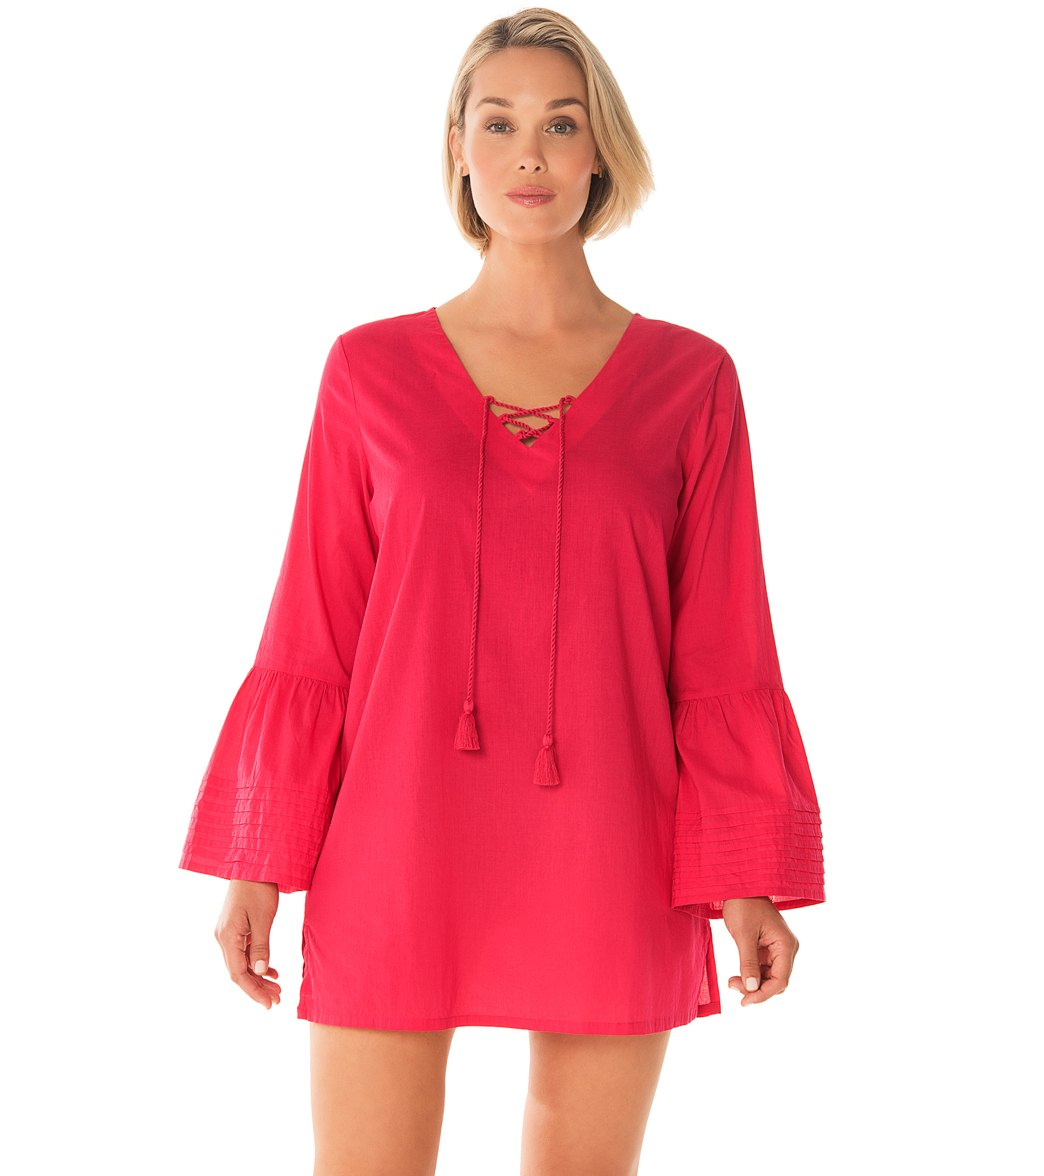 ac1e2a3aafc8c Penbrooke Take Cover Cotton Voile V-Neck Cover Up Dress at SwimOutlet.com -  Free Shipping